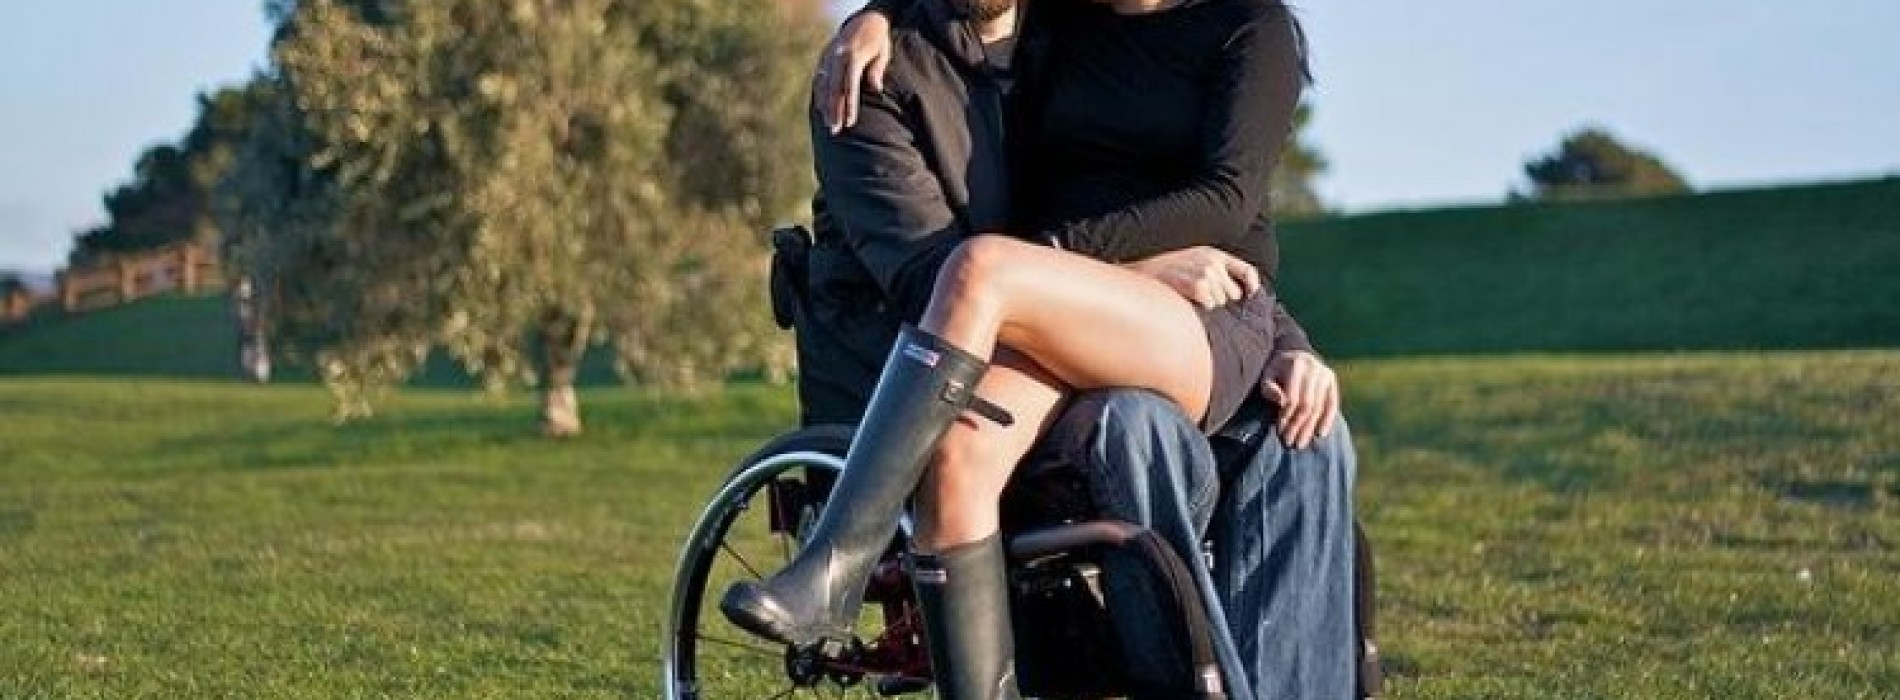 Disability, sex and relationships: sex education